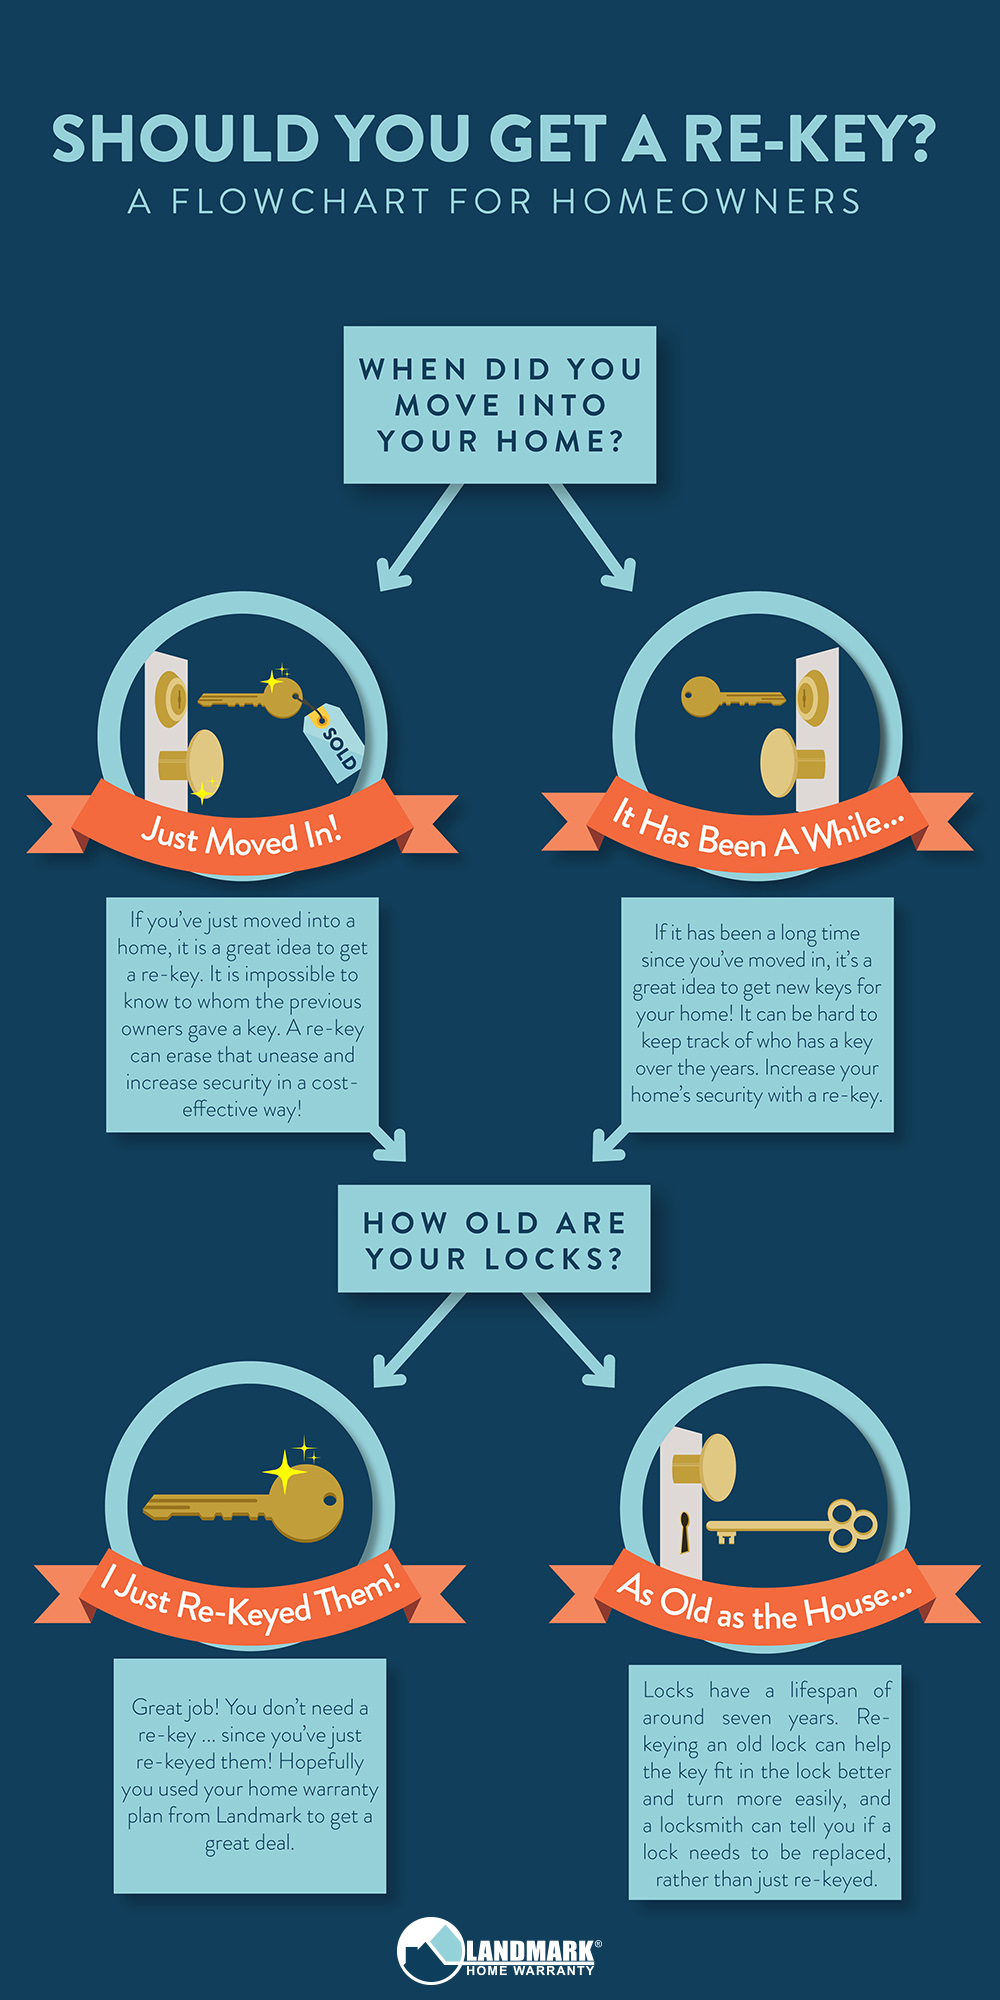 Should you get a re-key on your home? A flowchart for homeowners.